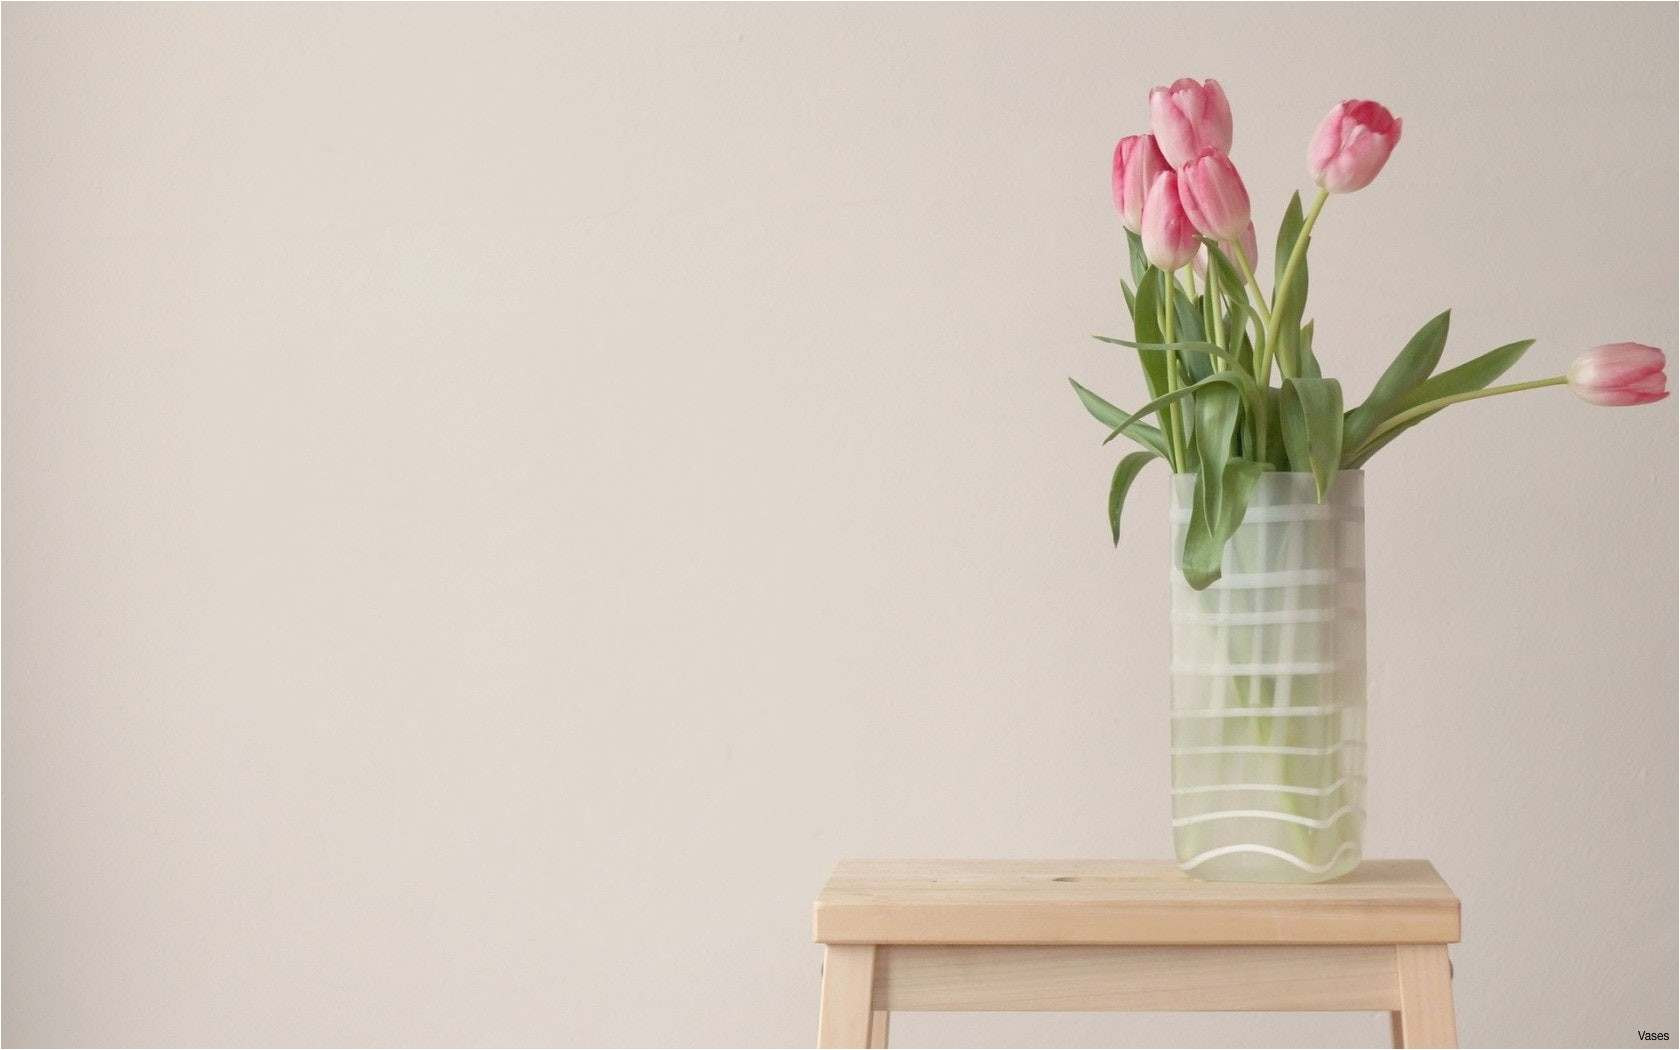 22 Awesome Decorative Modern Vases 2021 free download decorative modern vases of cliparts new design table legs and bases decor modern also great intended for cliparts fresh table legs and bases decor modern also great flower vase table 04h pic